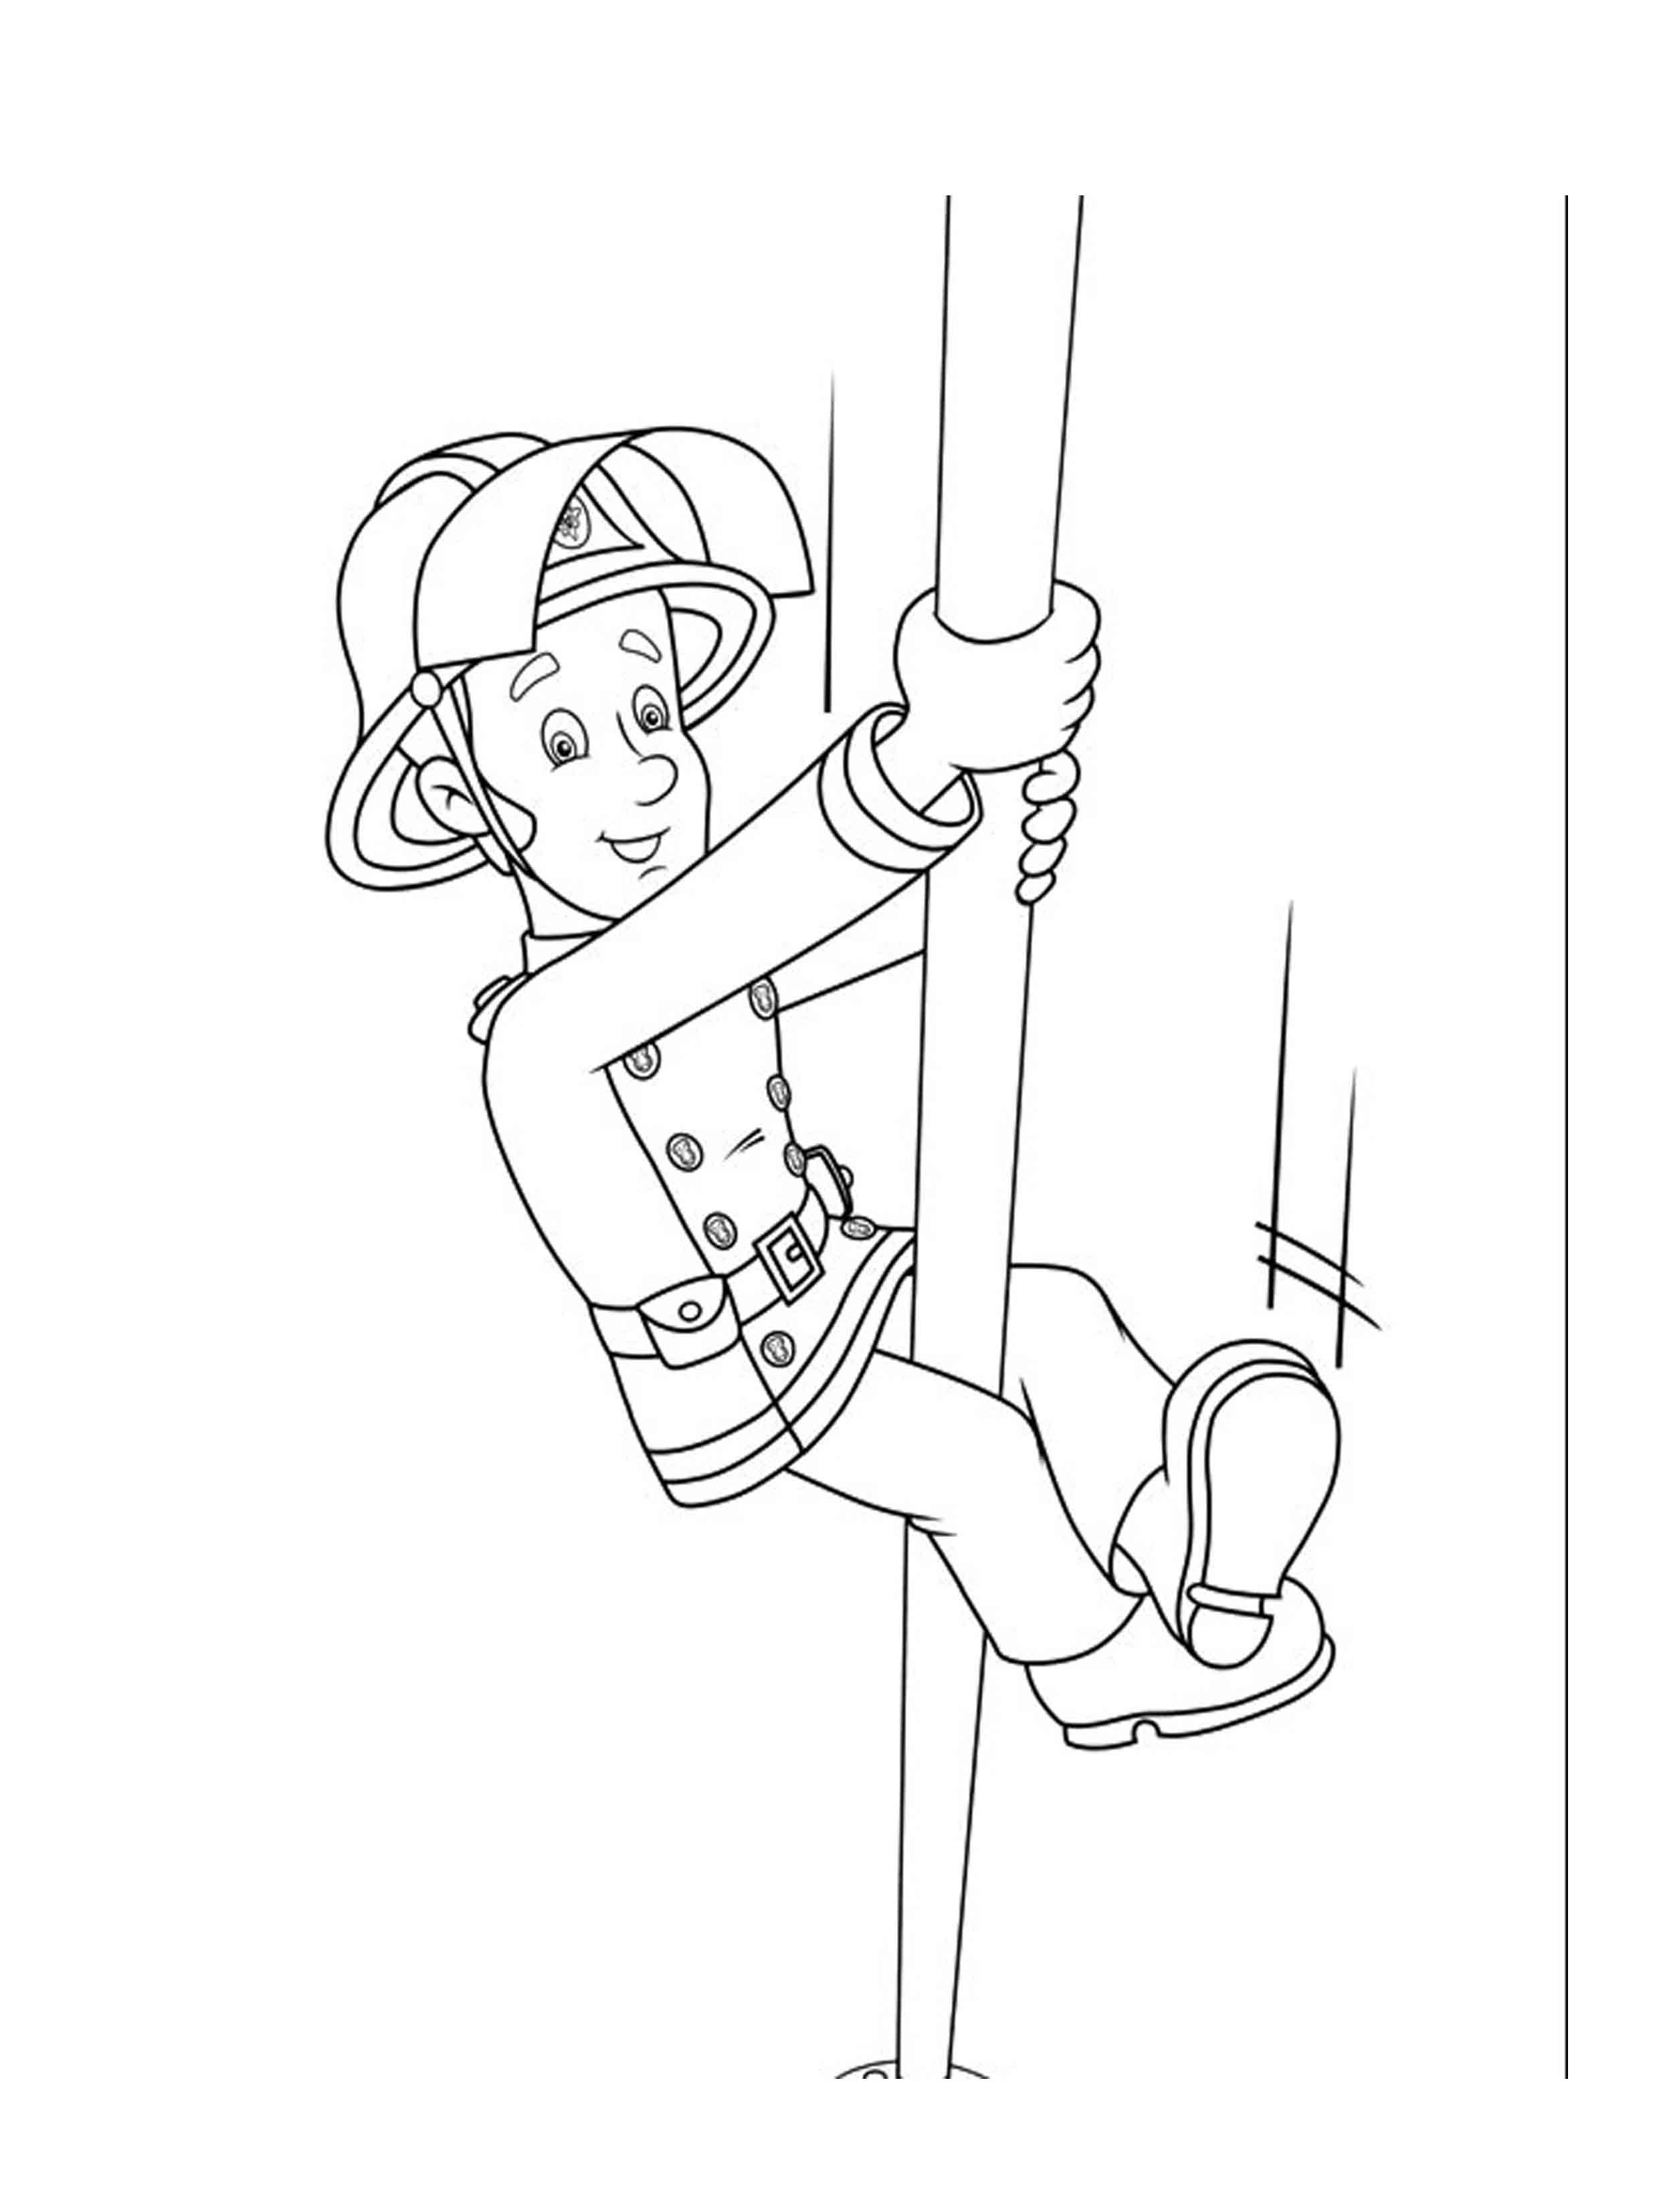 coloring book pages fireman - photo#24